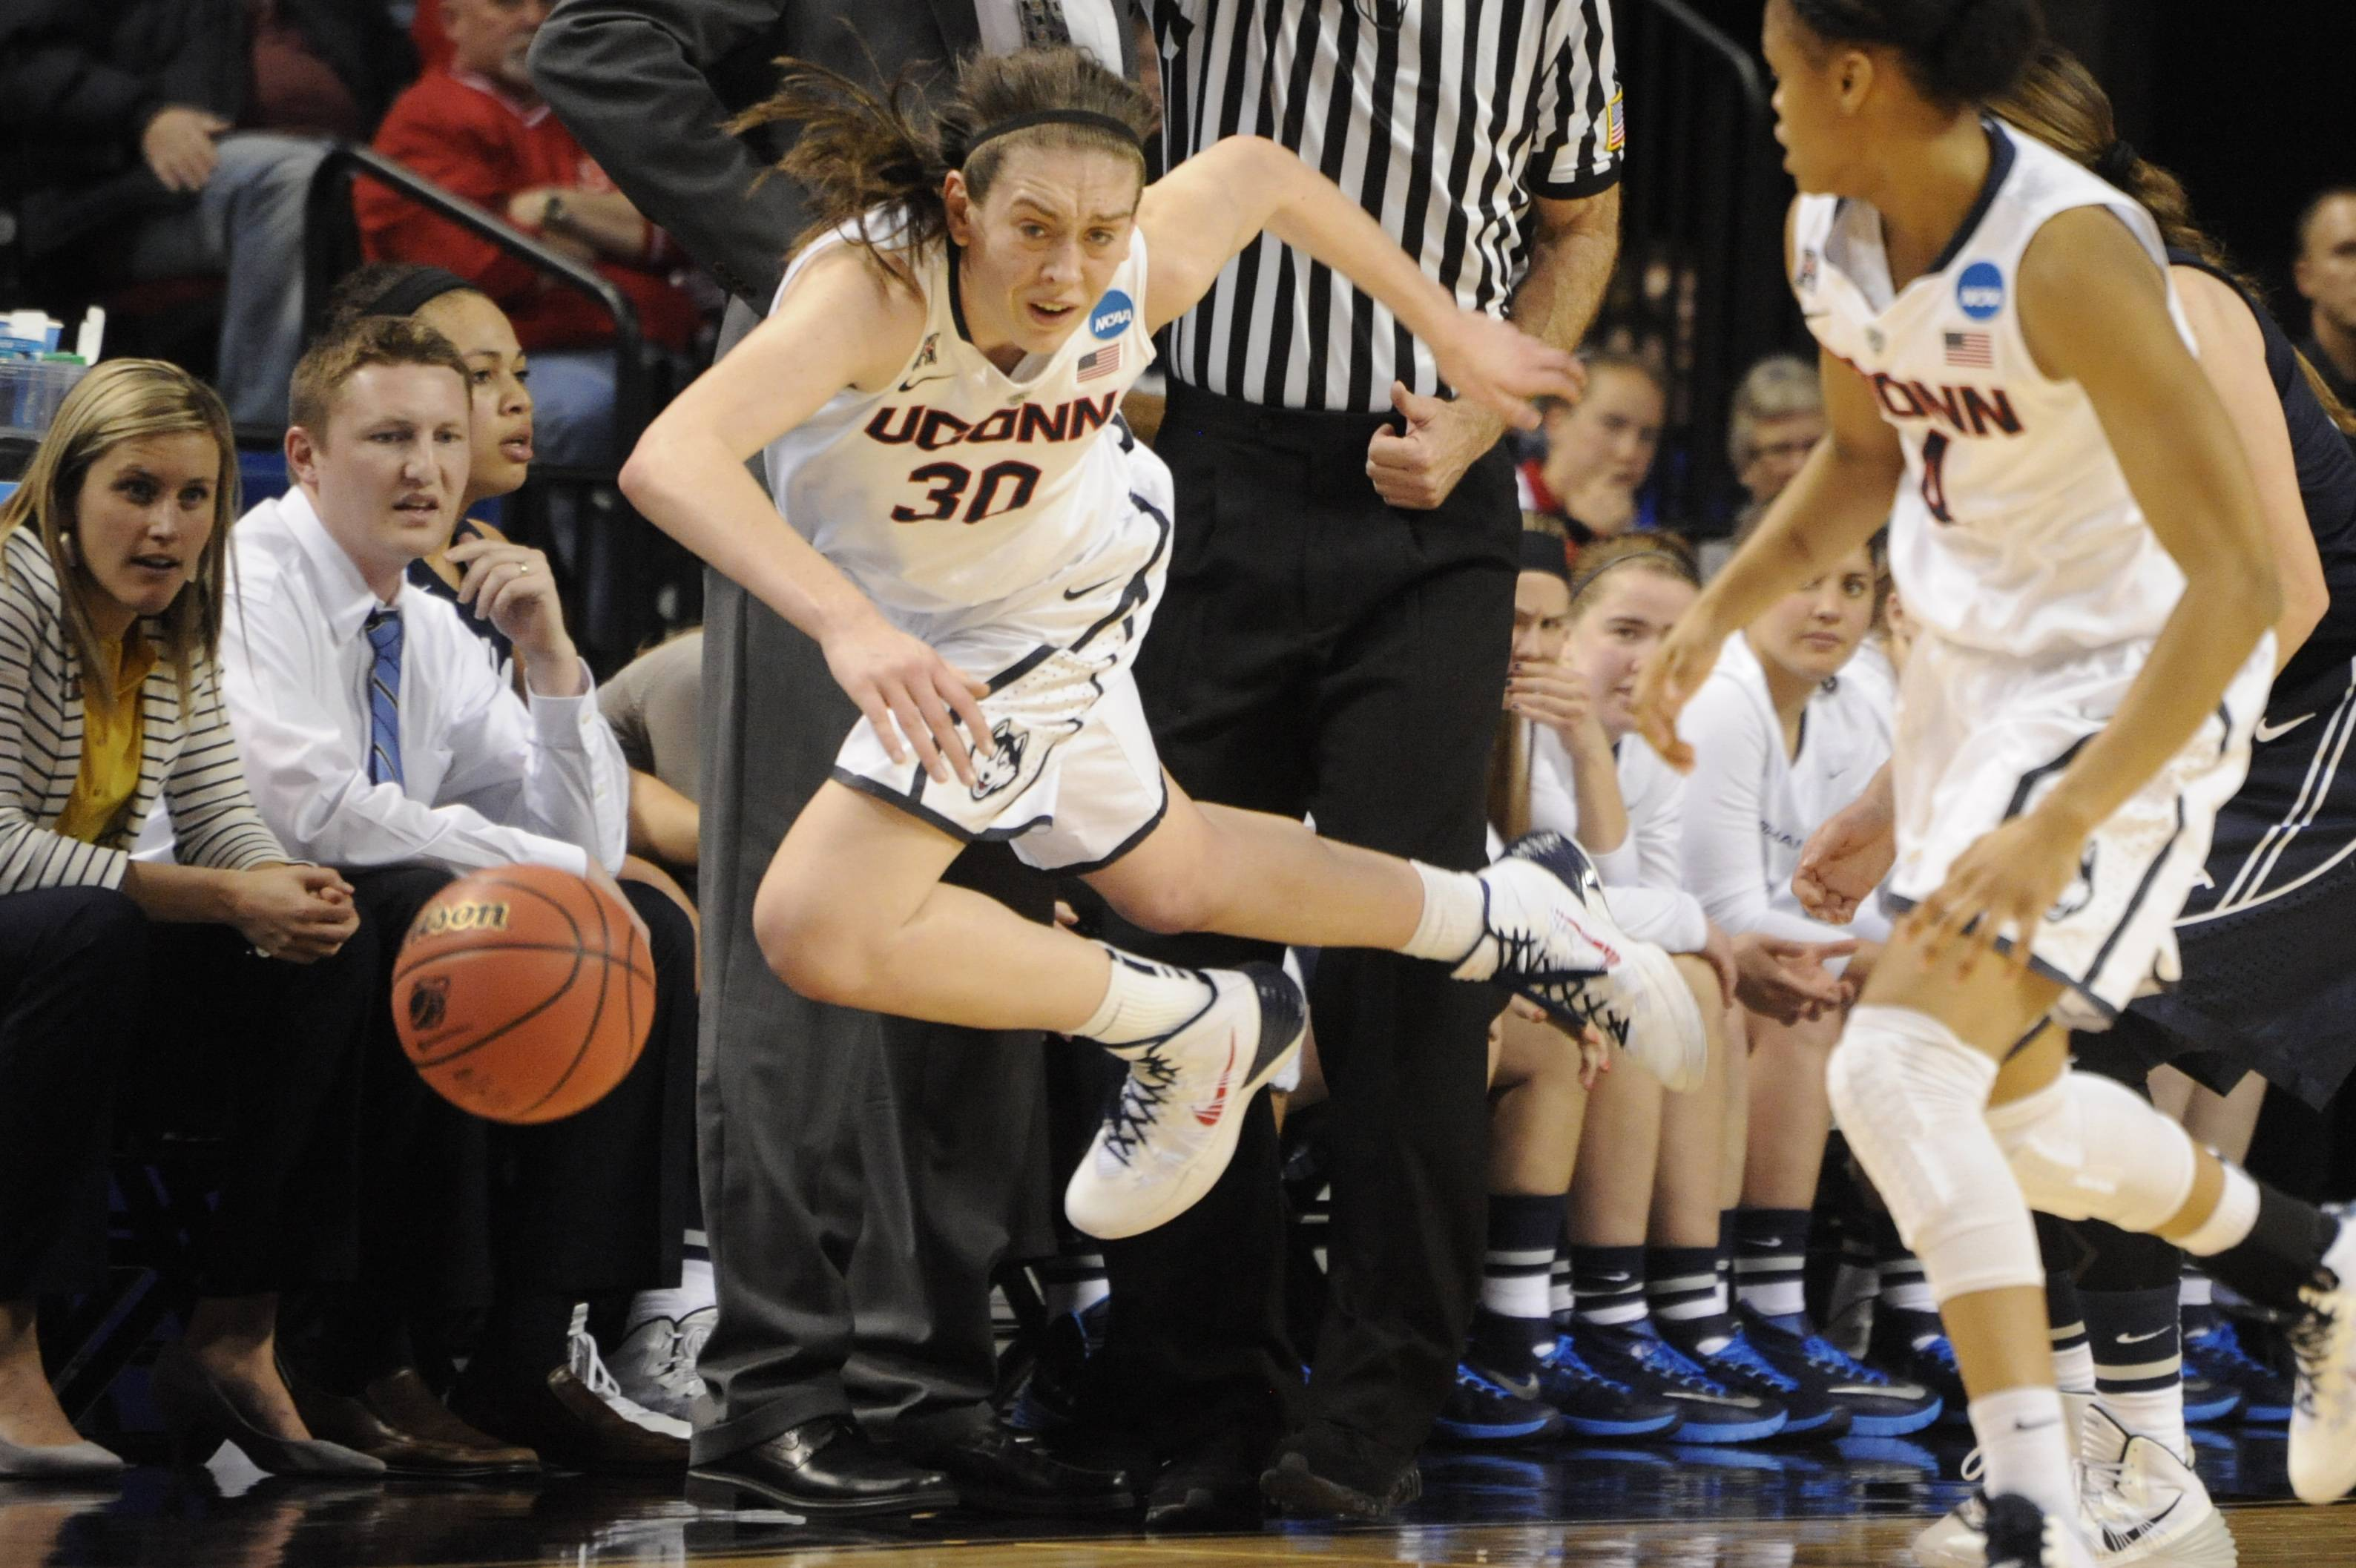 Connecticut's Breanna Stewart (30) tries to keep the ball in bounds during the second half against BYU in a regional semifinal in the NCAA women's college basketball tournament Saturday in Lincoln, Neb. Connecticut won 70-51.